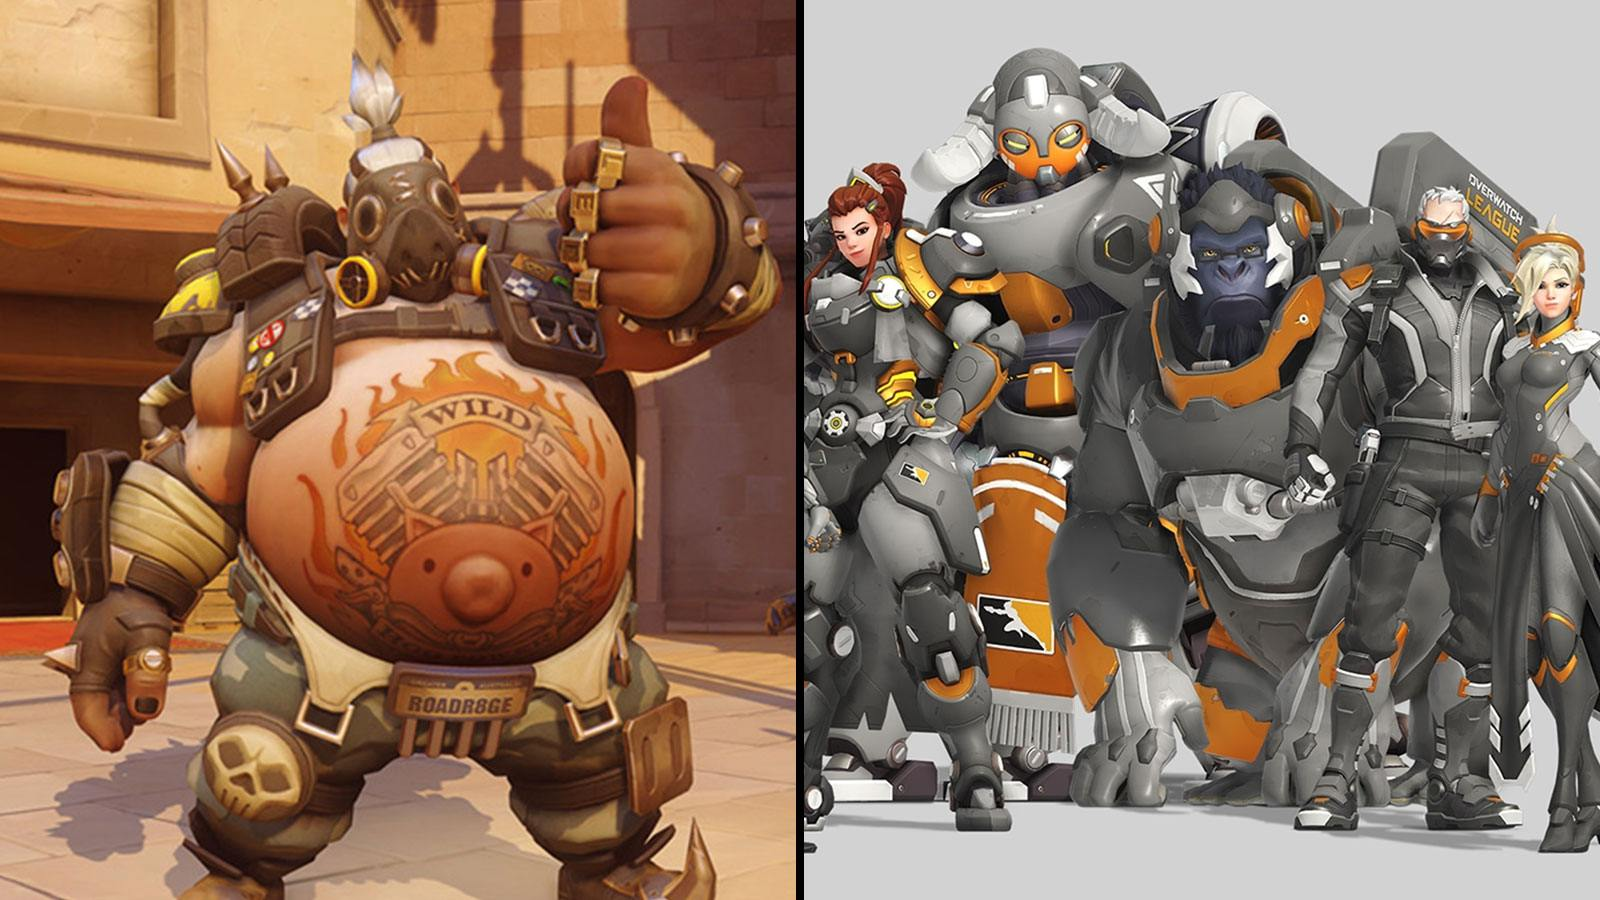 Roadhog Overwatch League Hero Pool Blizzard